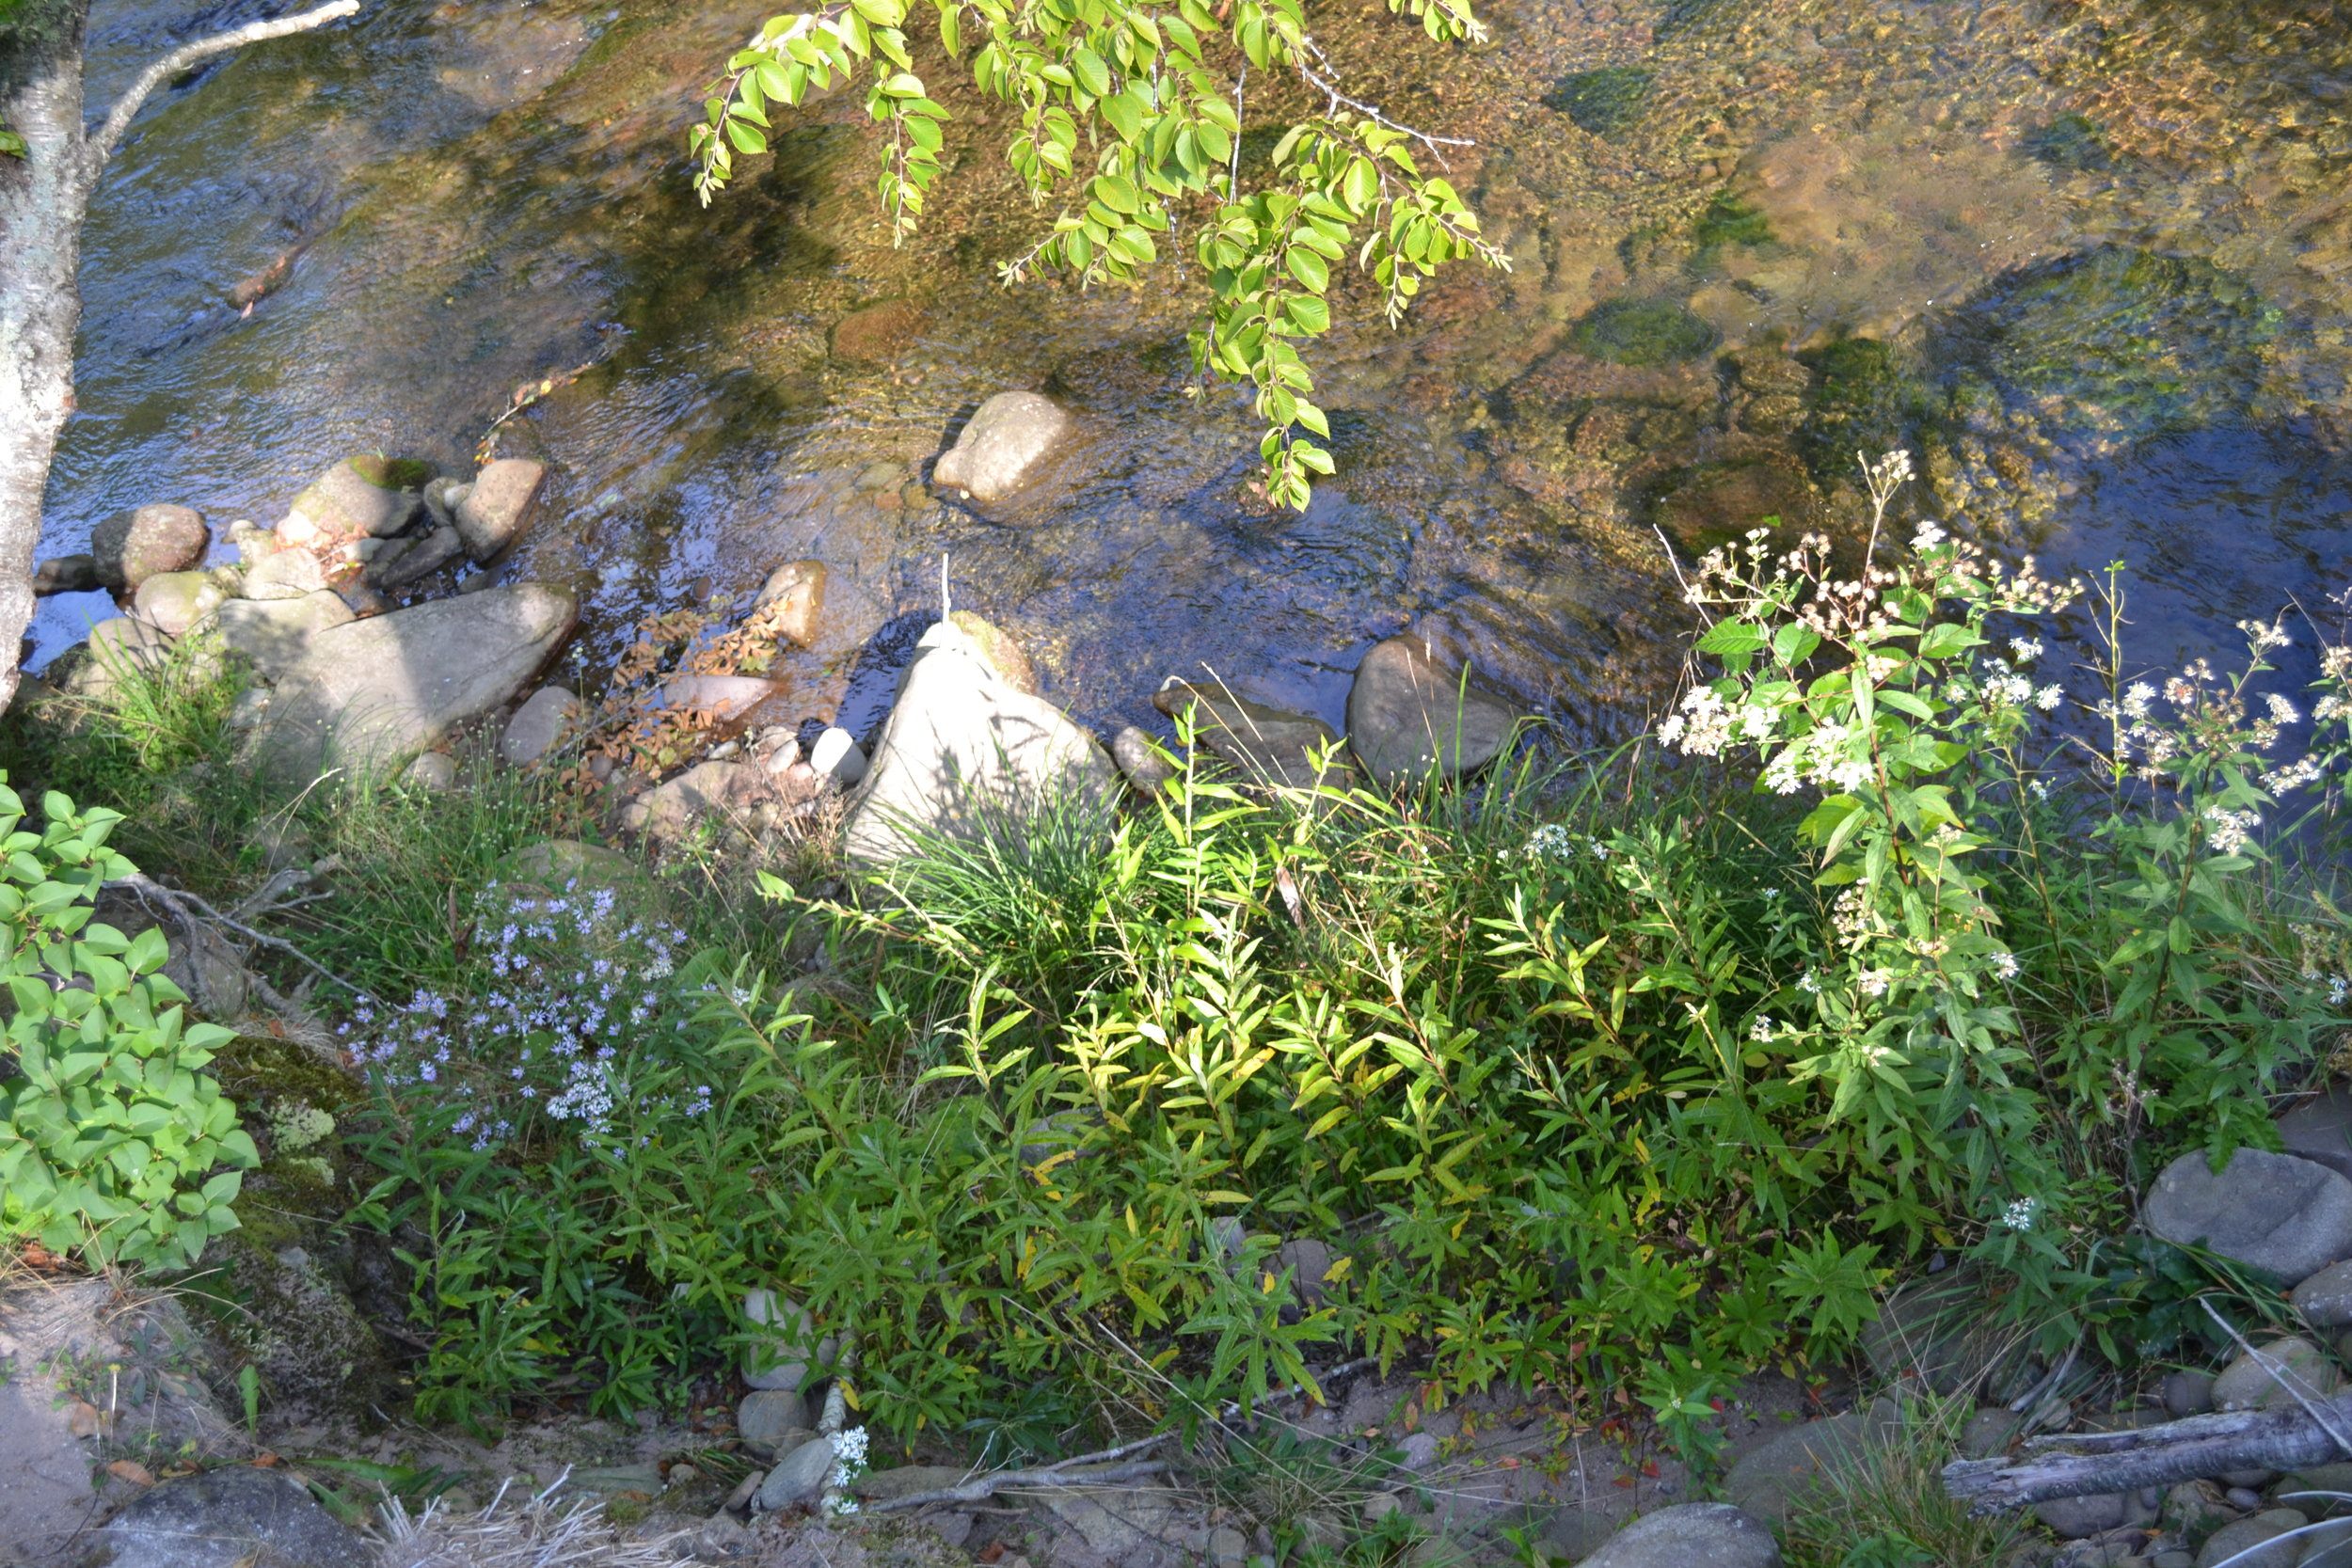 Willow Fascines and Riparian Buffer Planting at Rio Alto Property, E. Branch Neversink (CSBI)